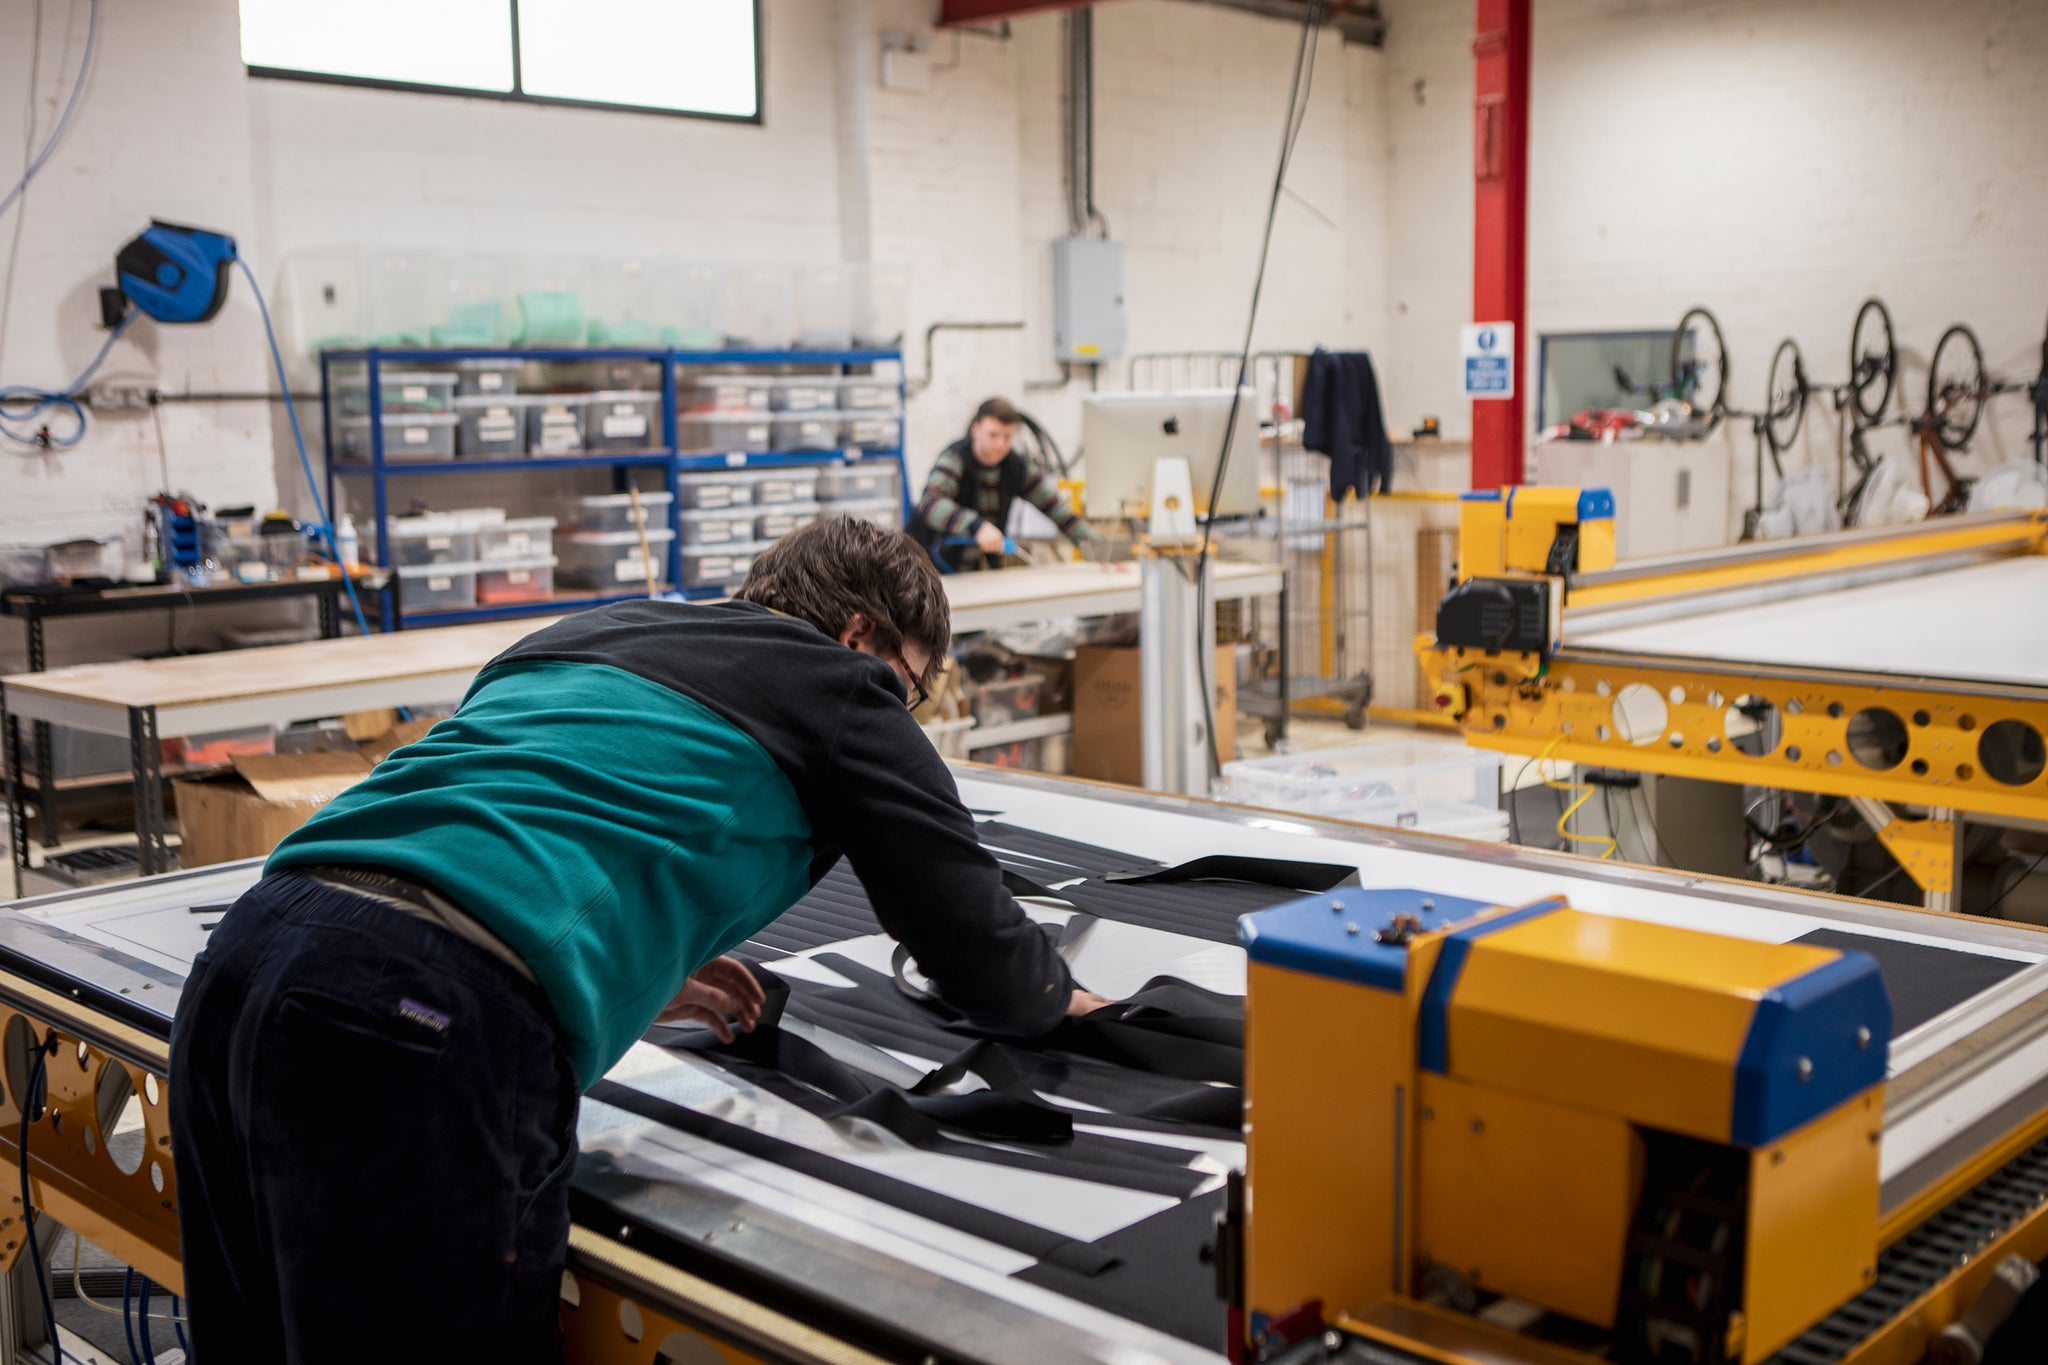 Restrap bikepacking cycle touring factory workshop